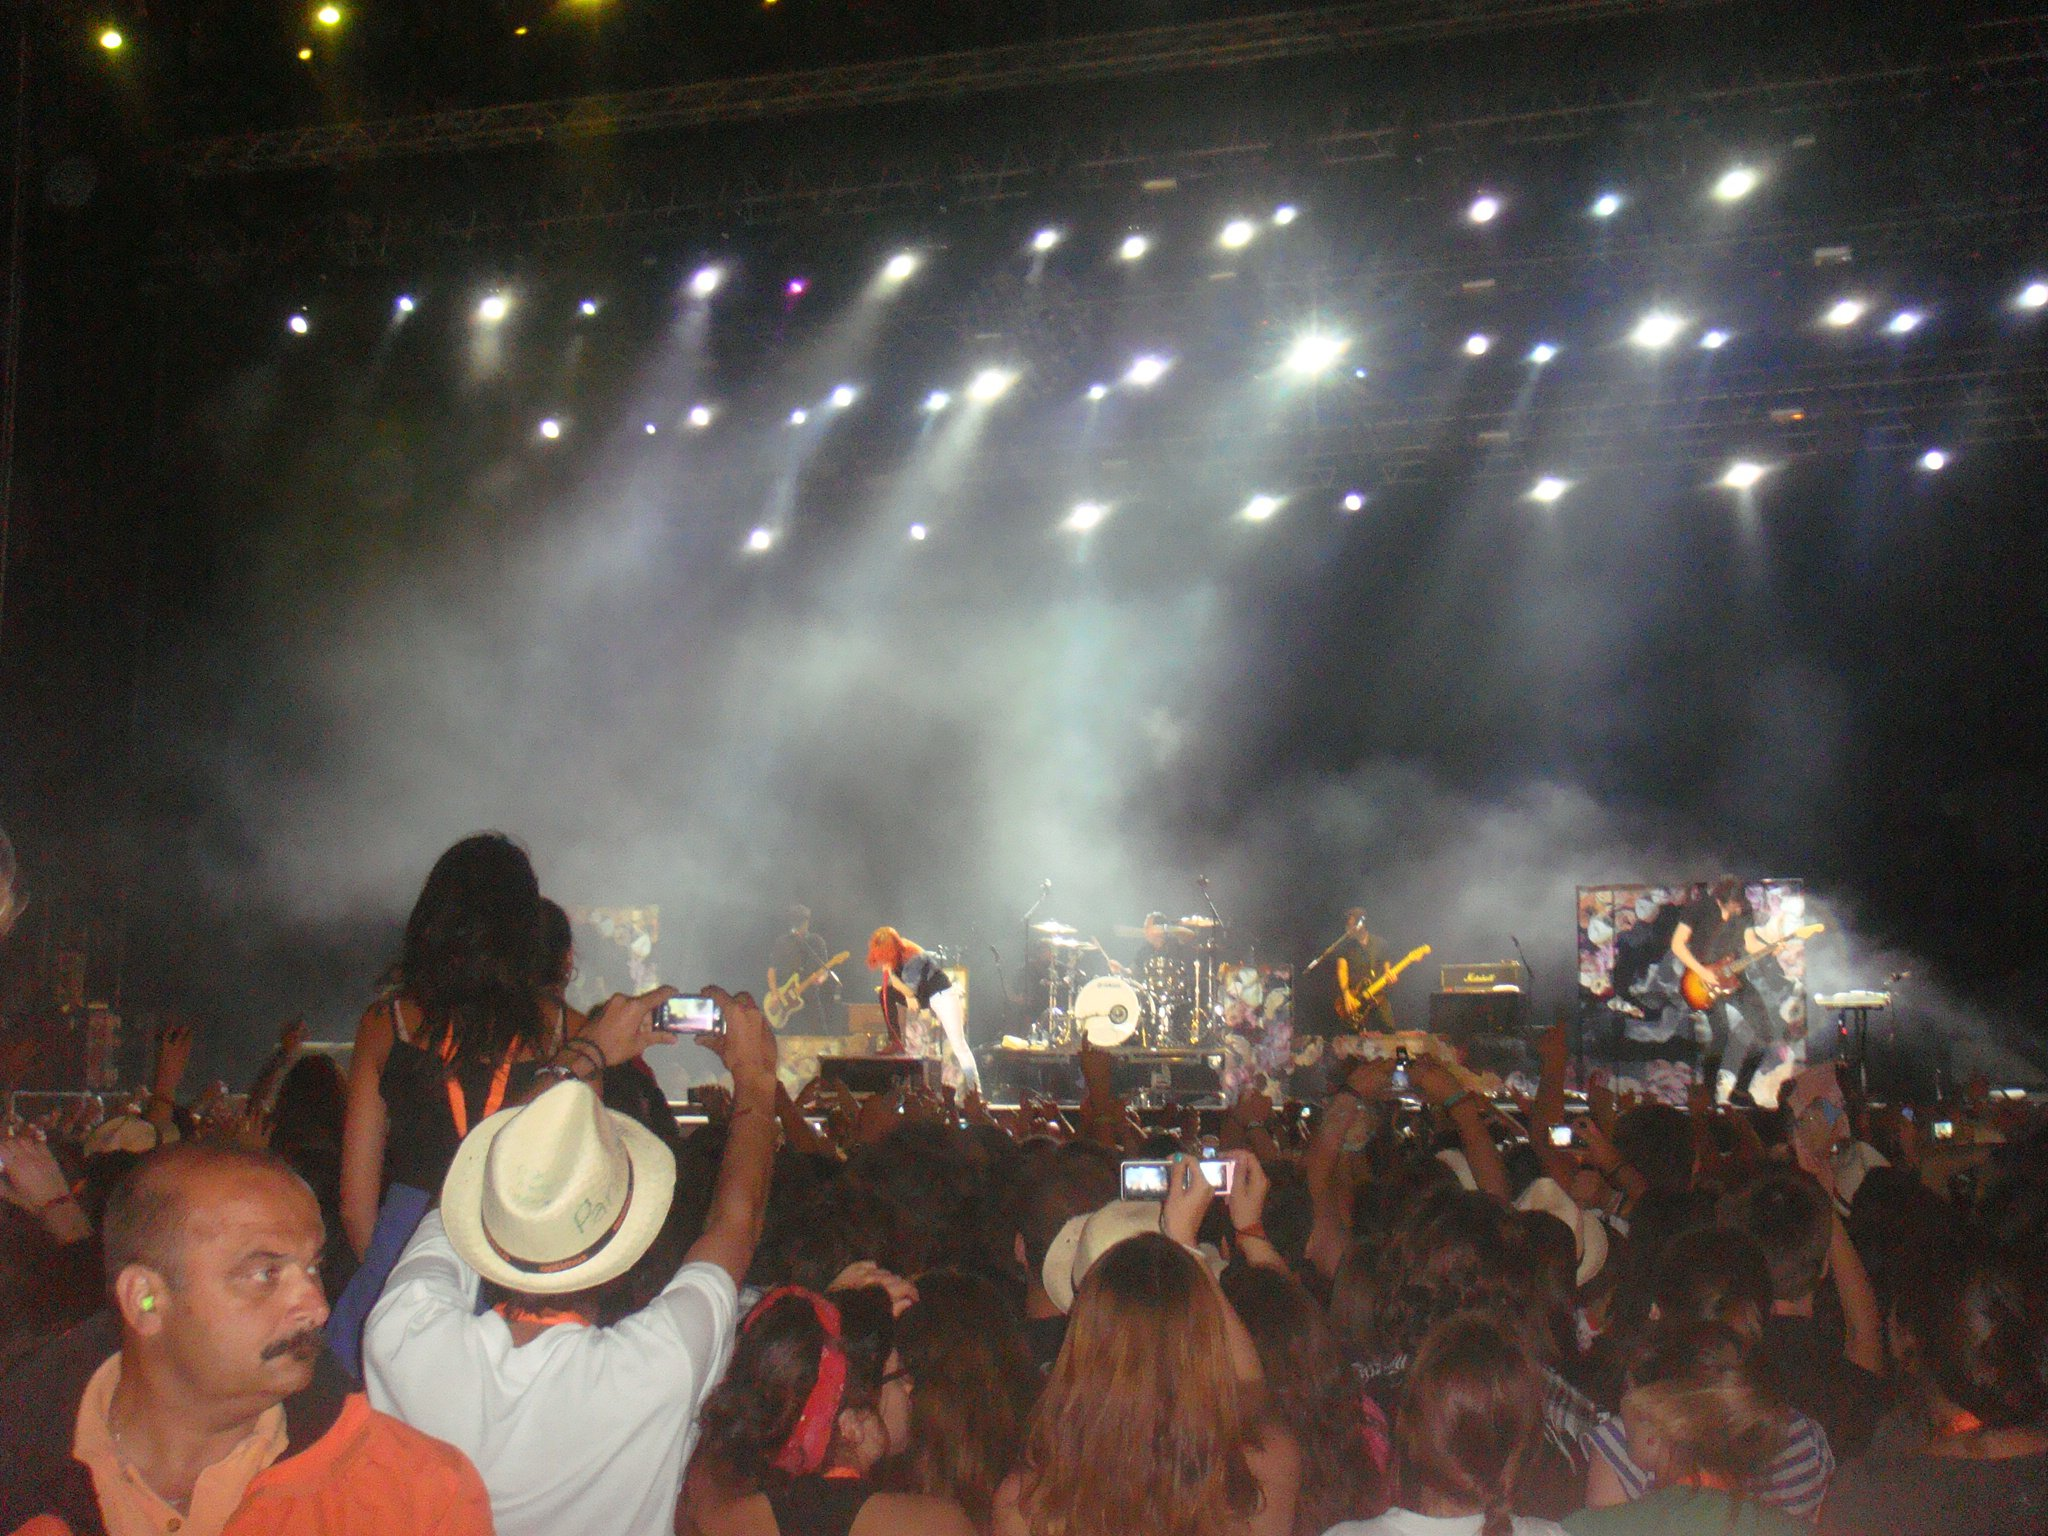 Paramore gig, the band playing in the background, the crowd is cheering